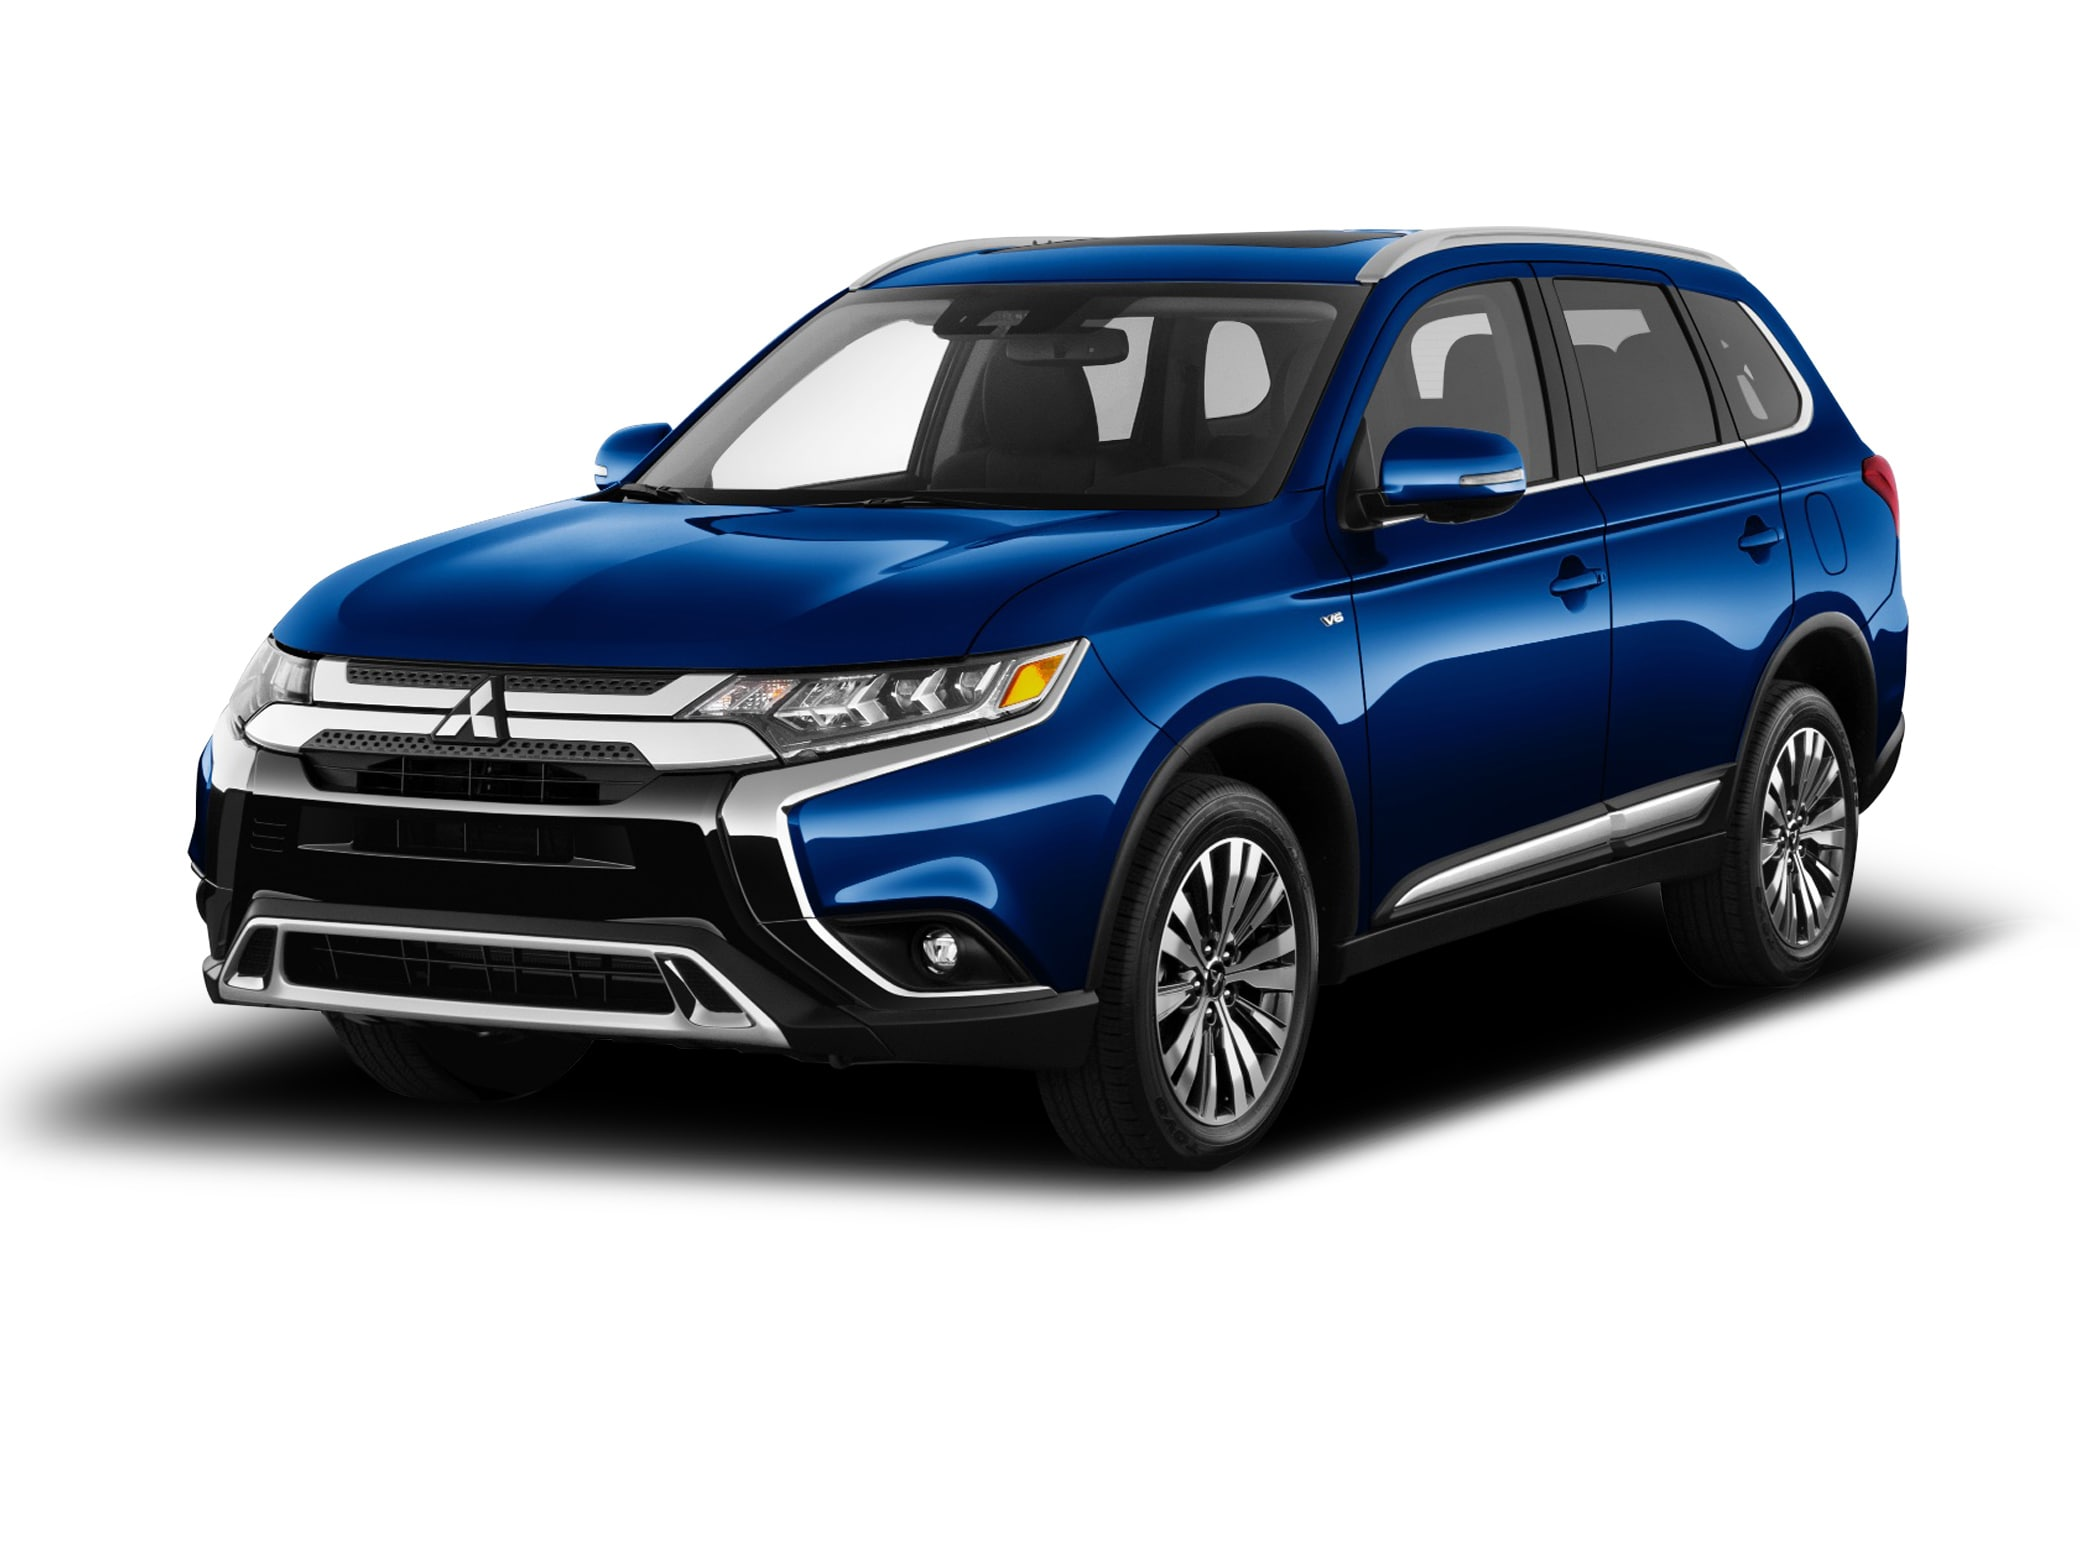 2019 mitsubishi outlander cuv phoenix area big two mitsubishi in mesa. Black Bedroom Furniture Sets. Home Design Ideas